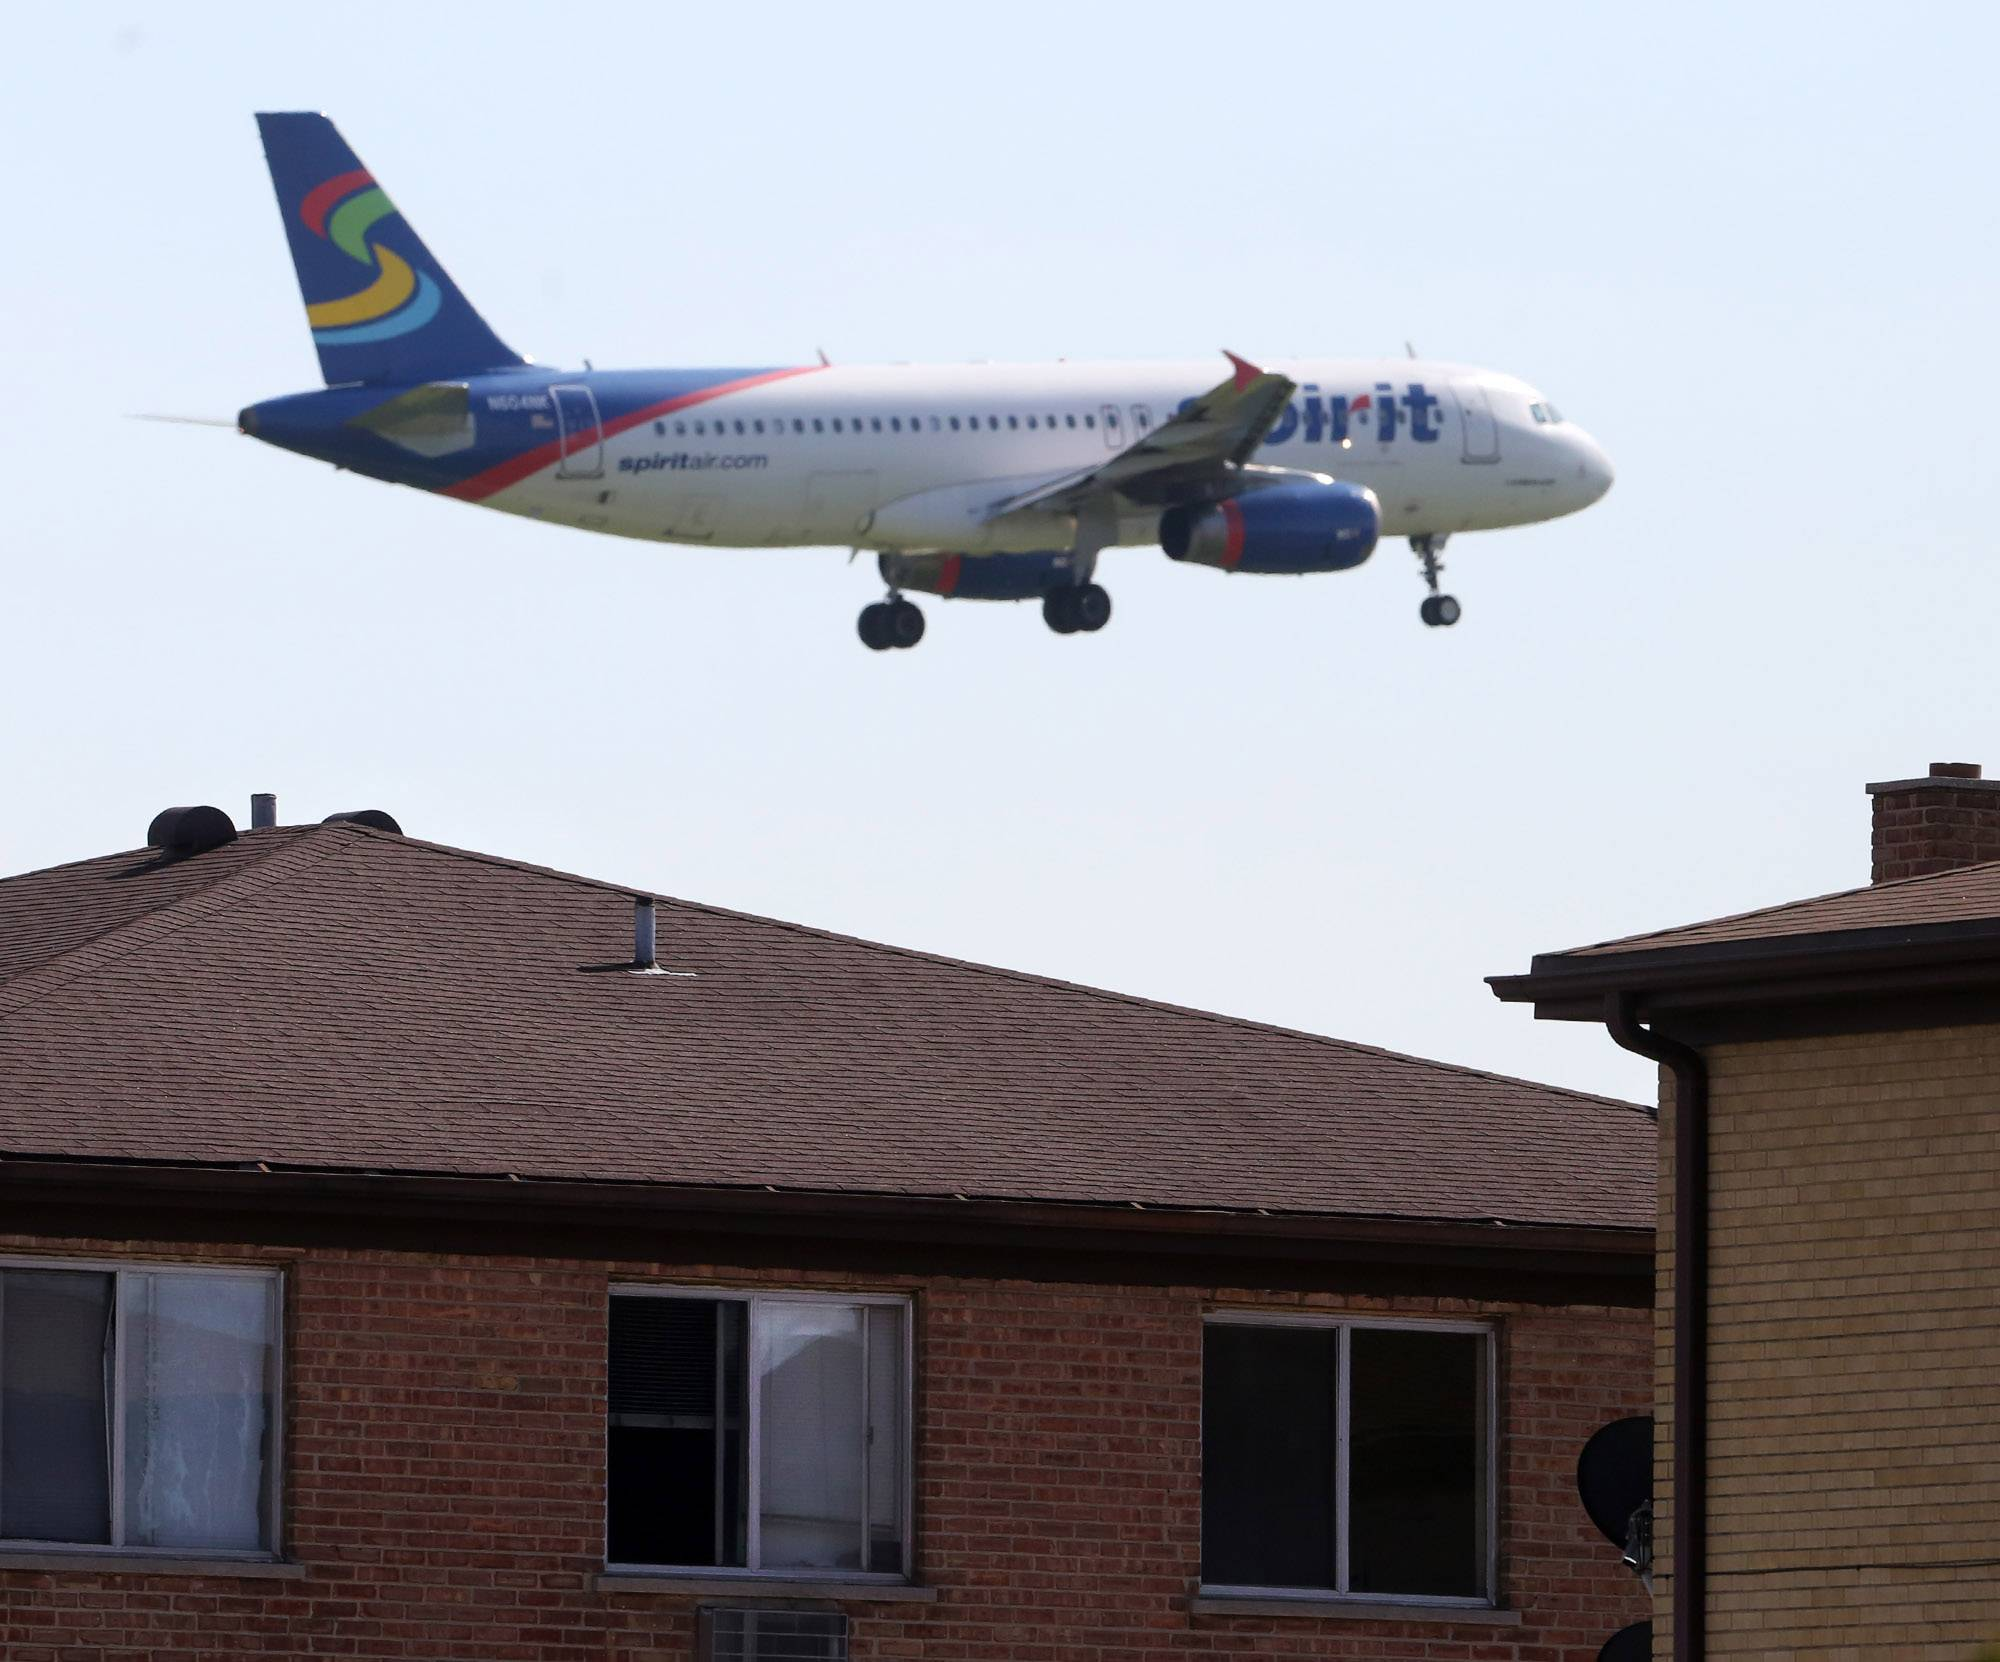 A jet flies over apartments near Allstate Arena in Rosemont.